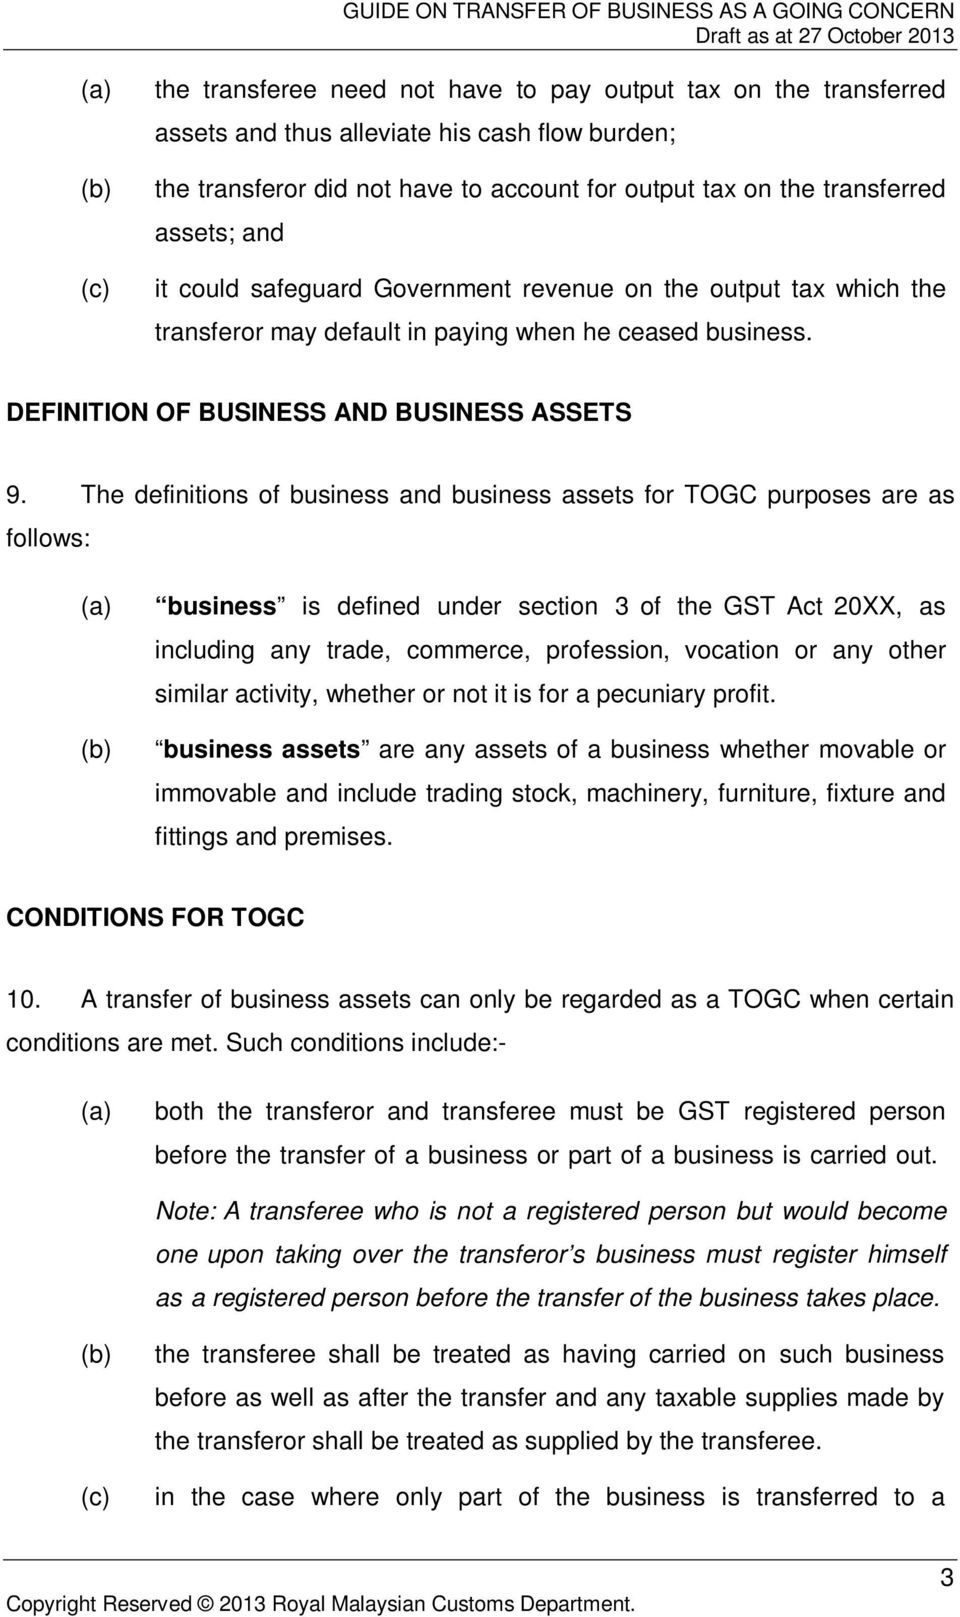 The definitions of business and business assets for TOGC purposes are as follows: business is defined under section 3 of the GST Act 20XX, as including any trade, commerce, profession, vocation or